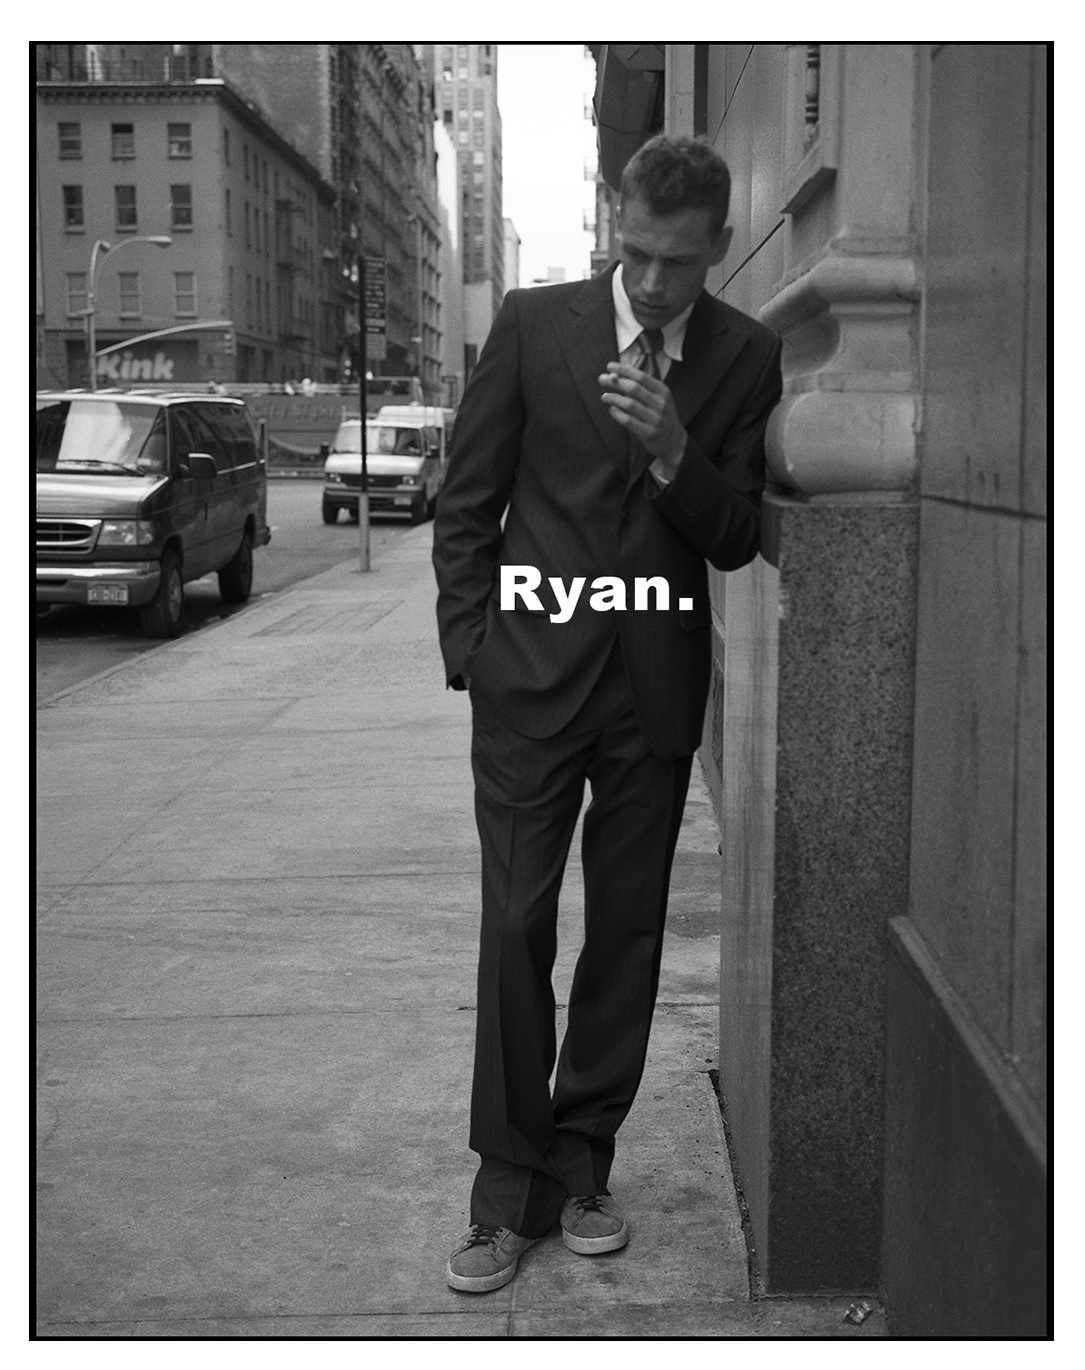 Ryan_BW_Film1